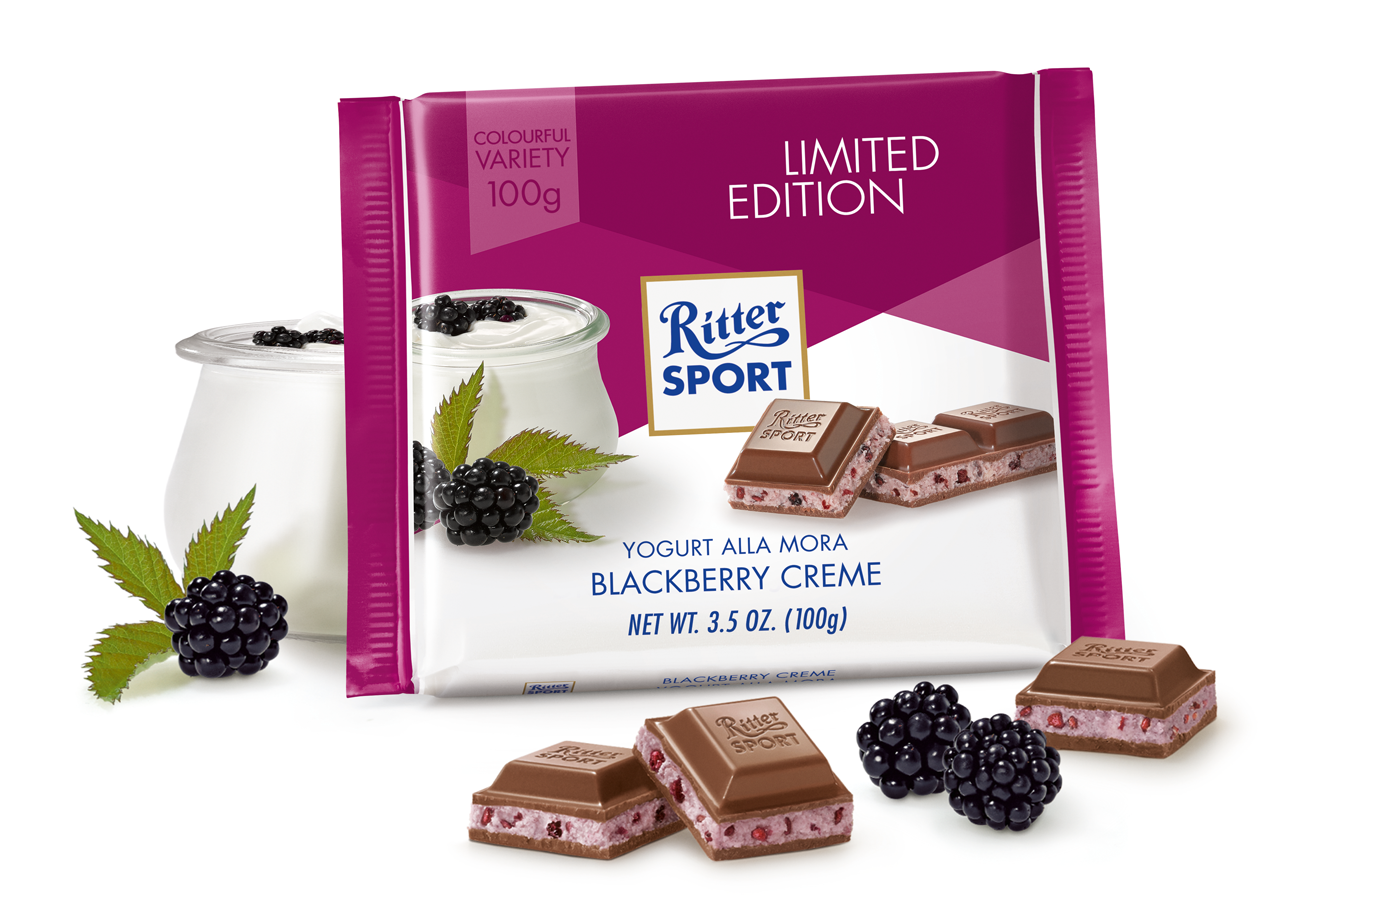 Ritter Sport Yogurt Blackberry Creme (SELL-BY 08DEC17) (3 LEFT)